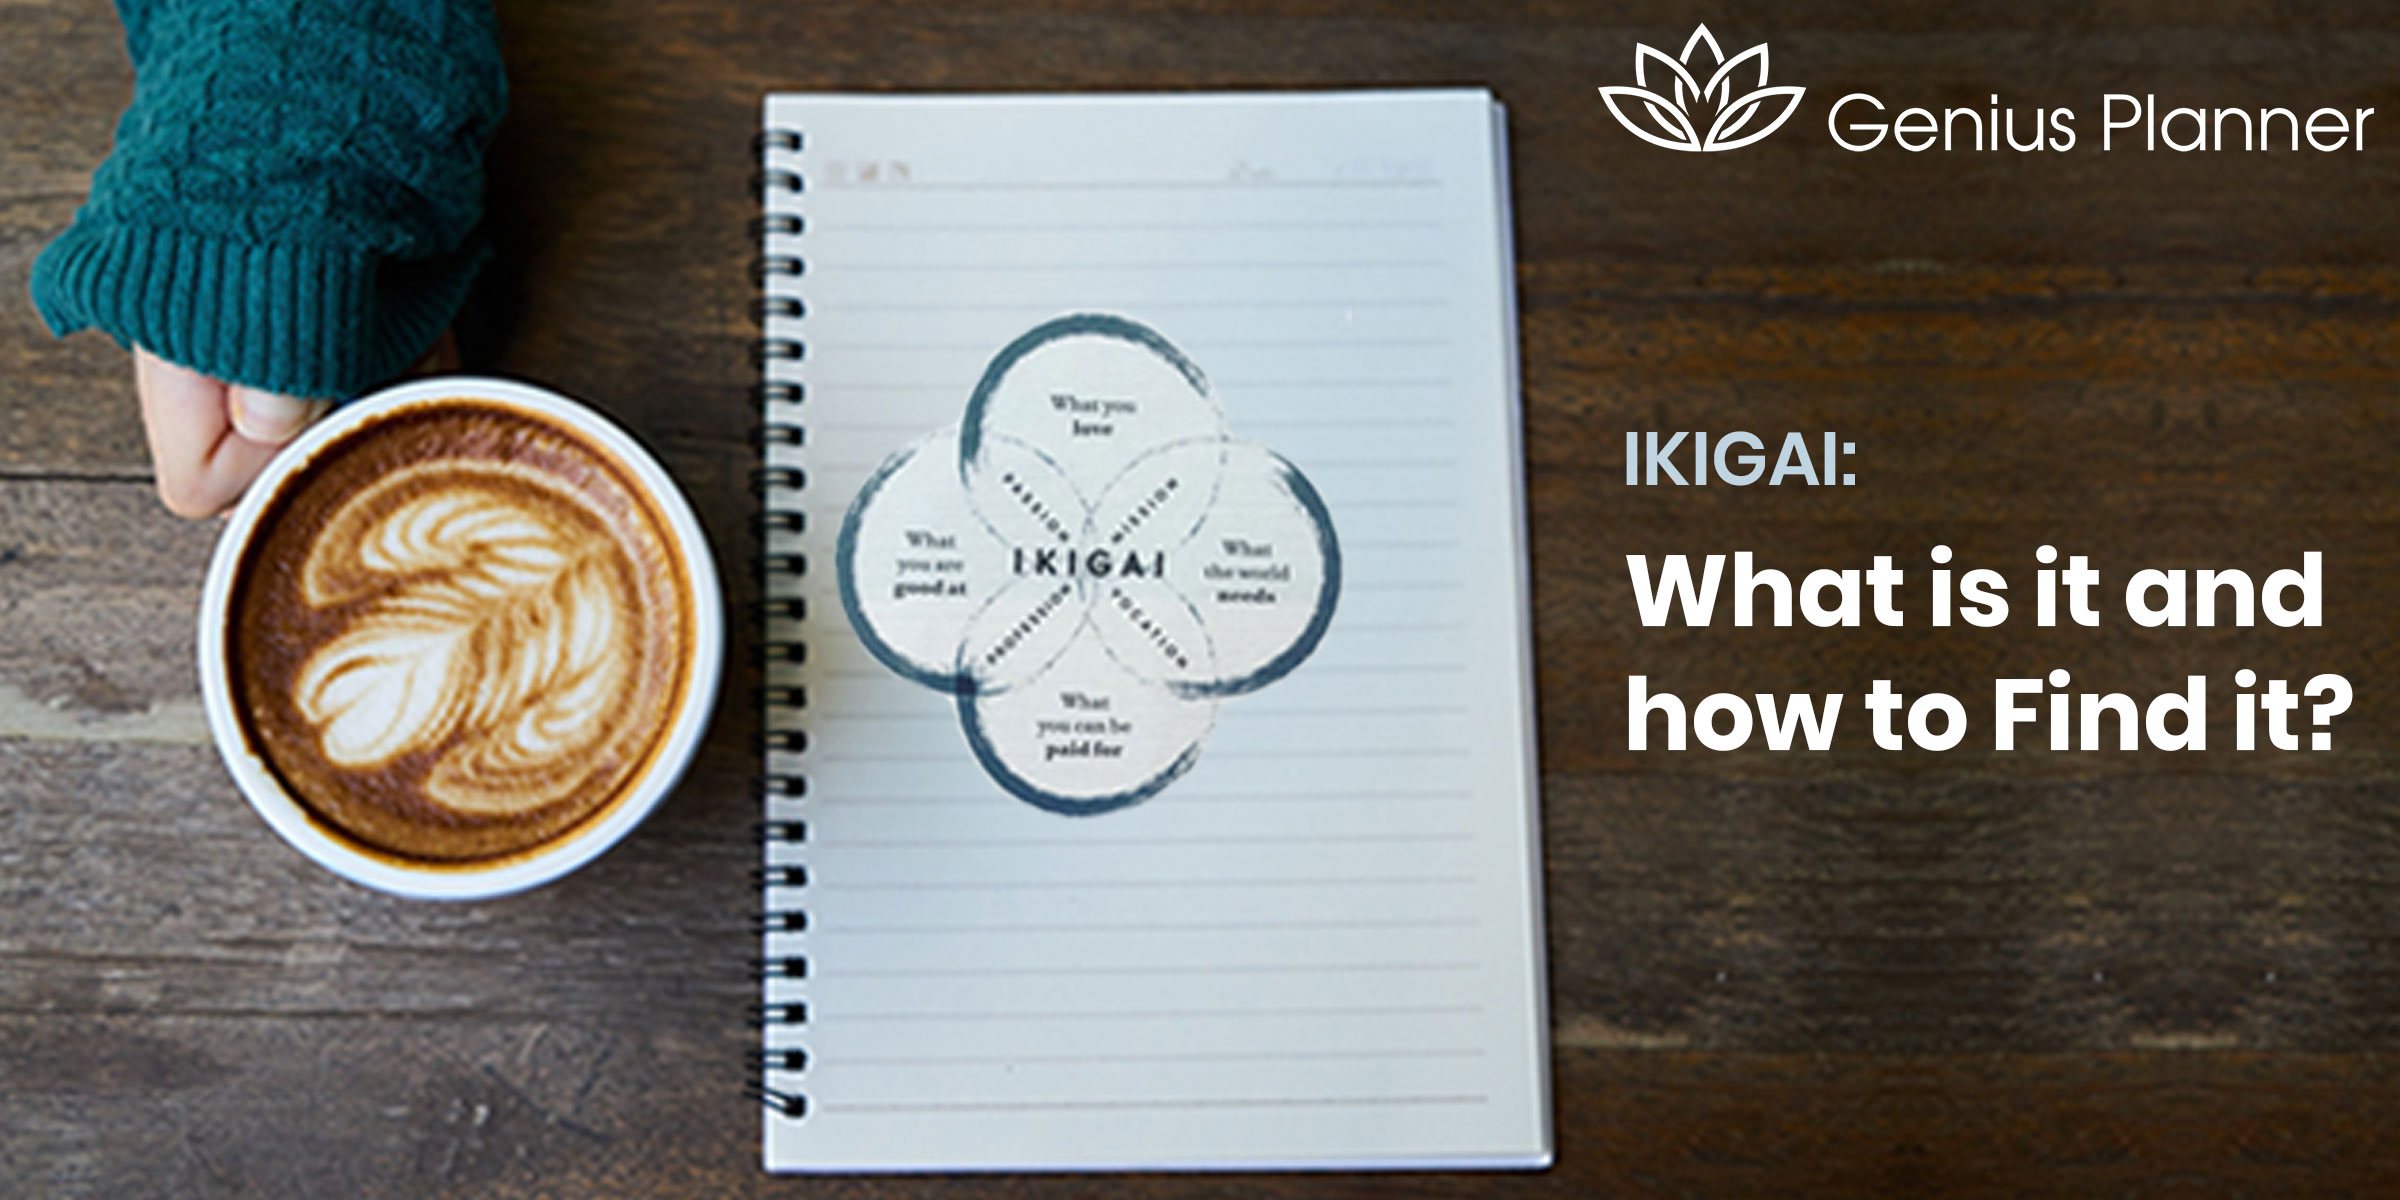 IKIGAI: What is it and how to find it?